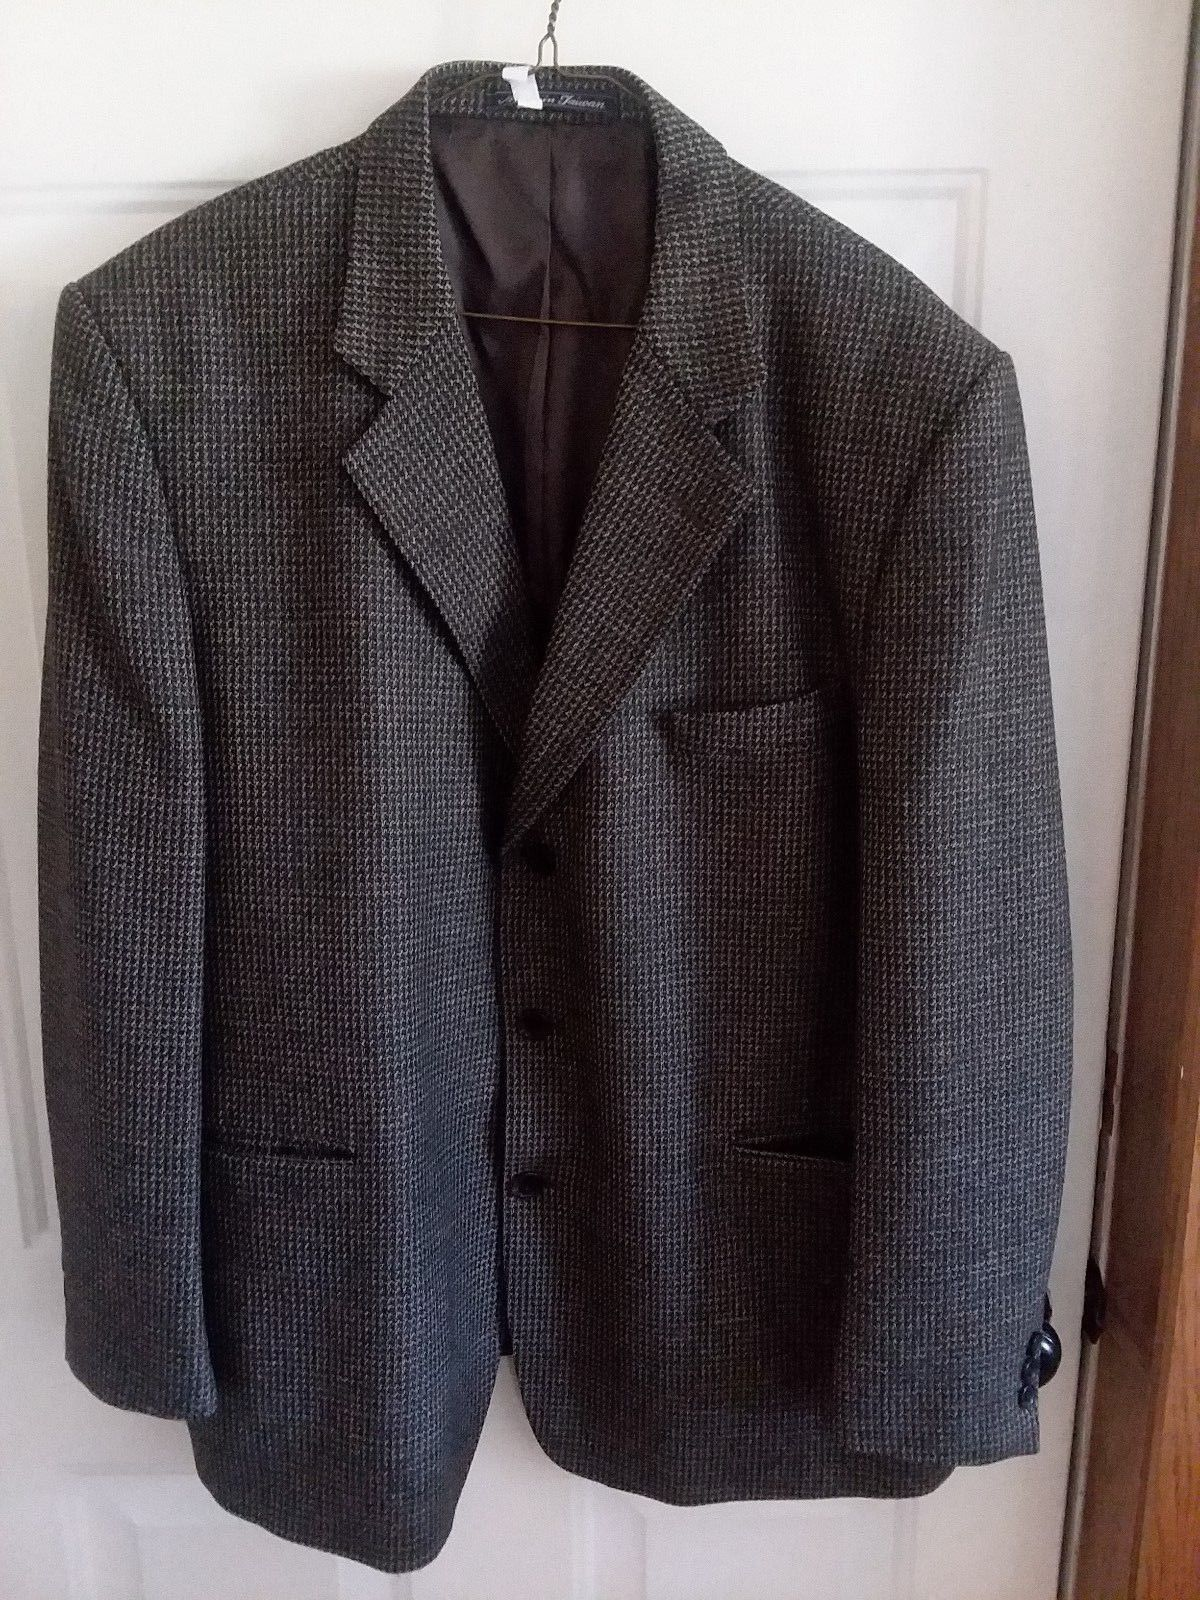 Joseph & Feiss Blazer Sports Black Gold small houndstooth size 48 R